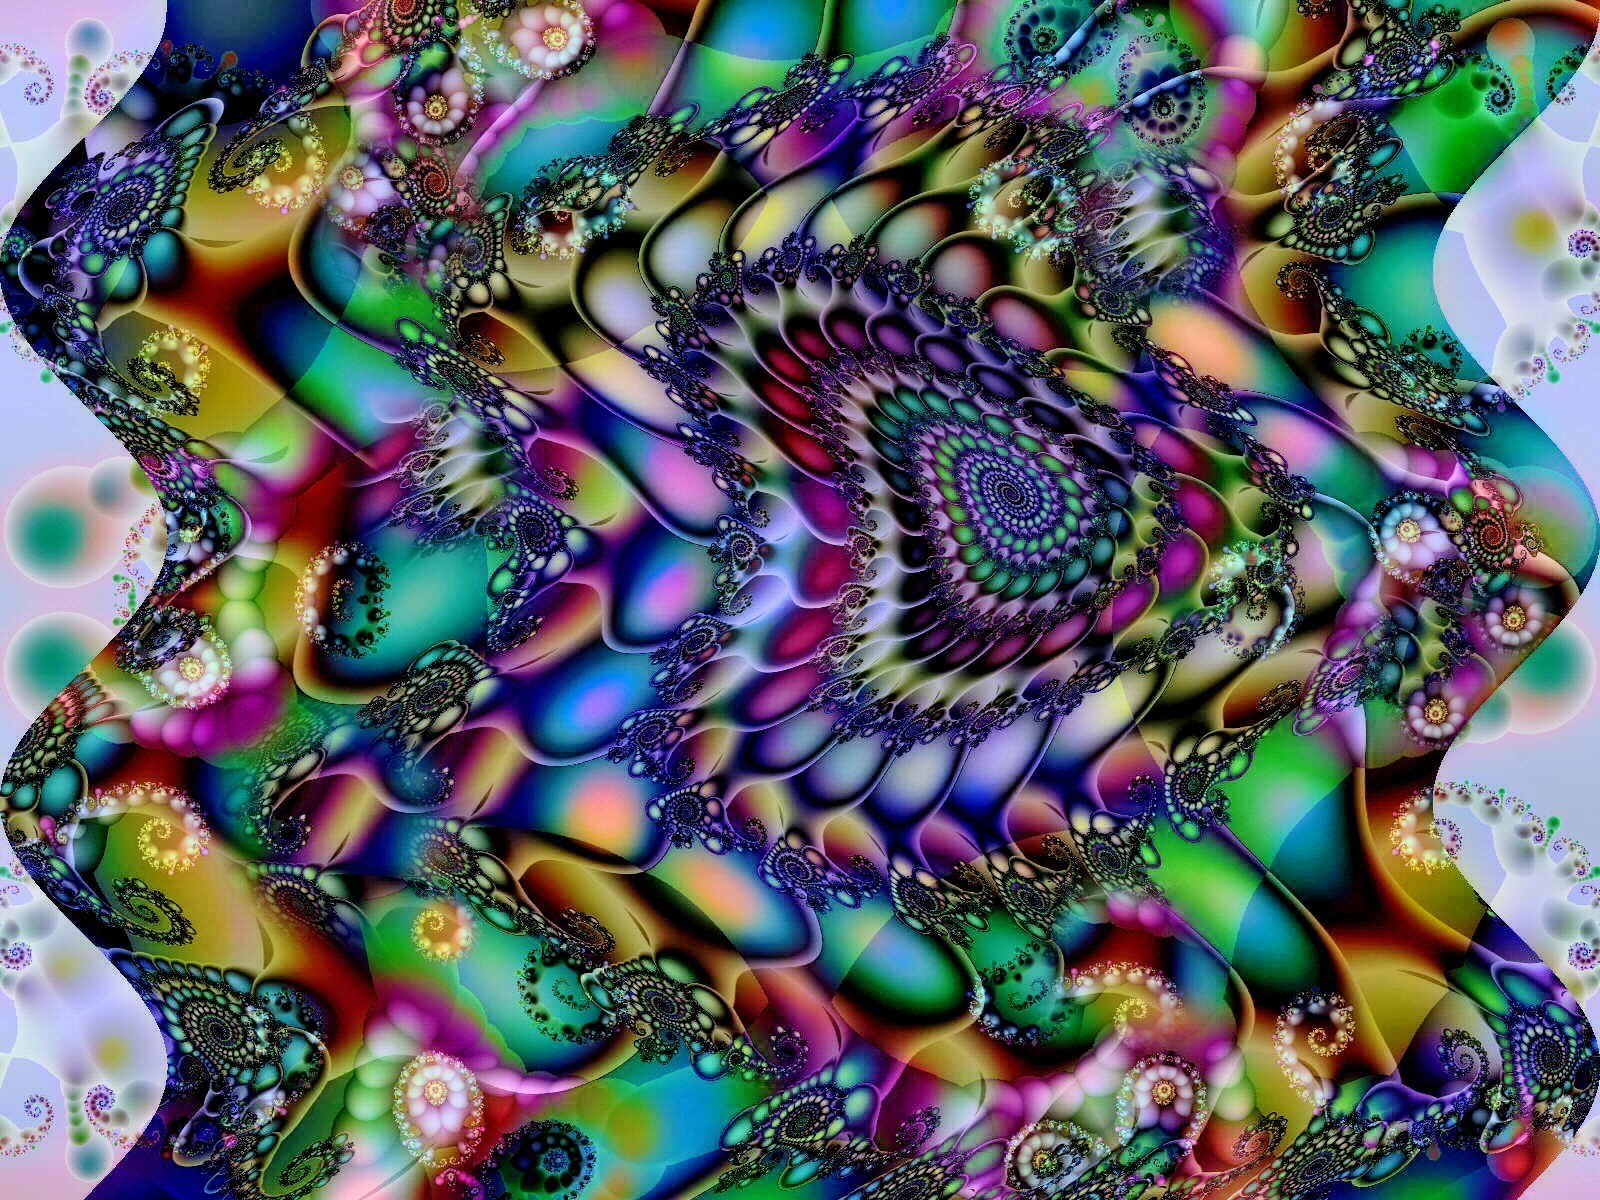 Psychedelic Computer Wallpapers Desktop Backgrounds 1600x1200 ID 1600x1200